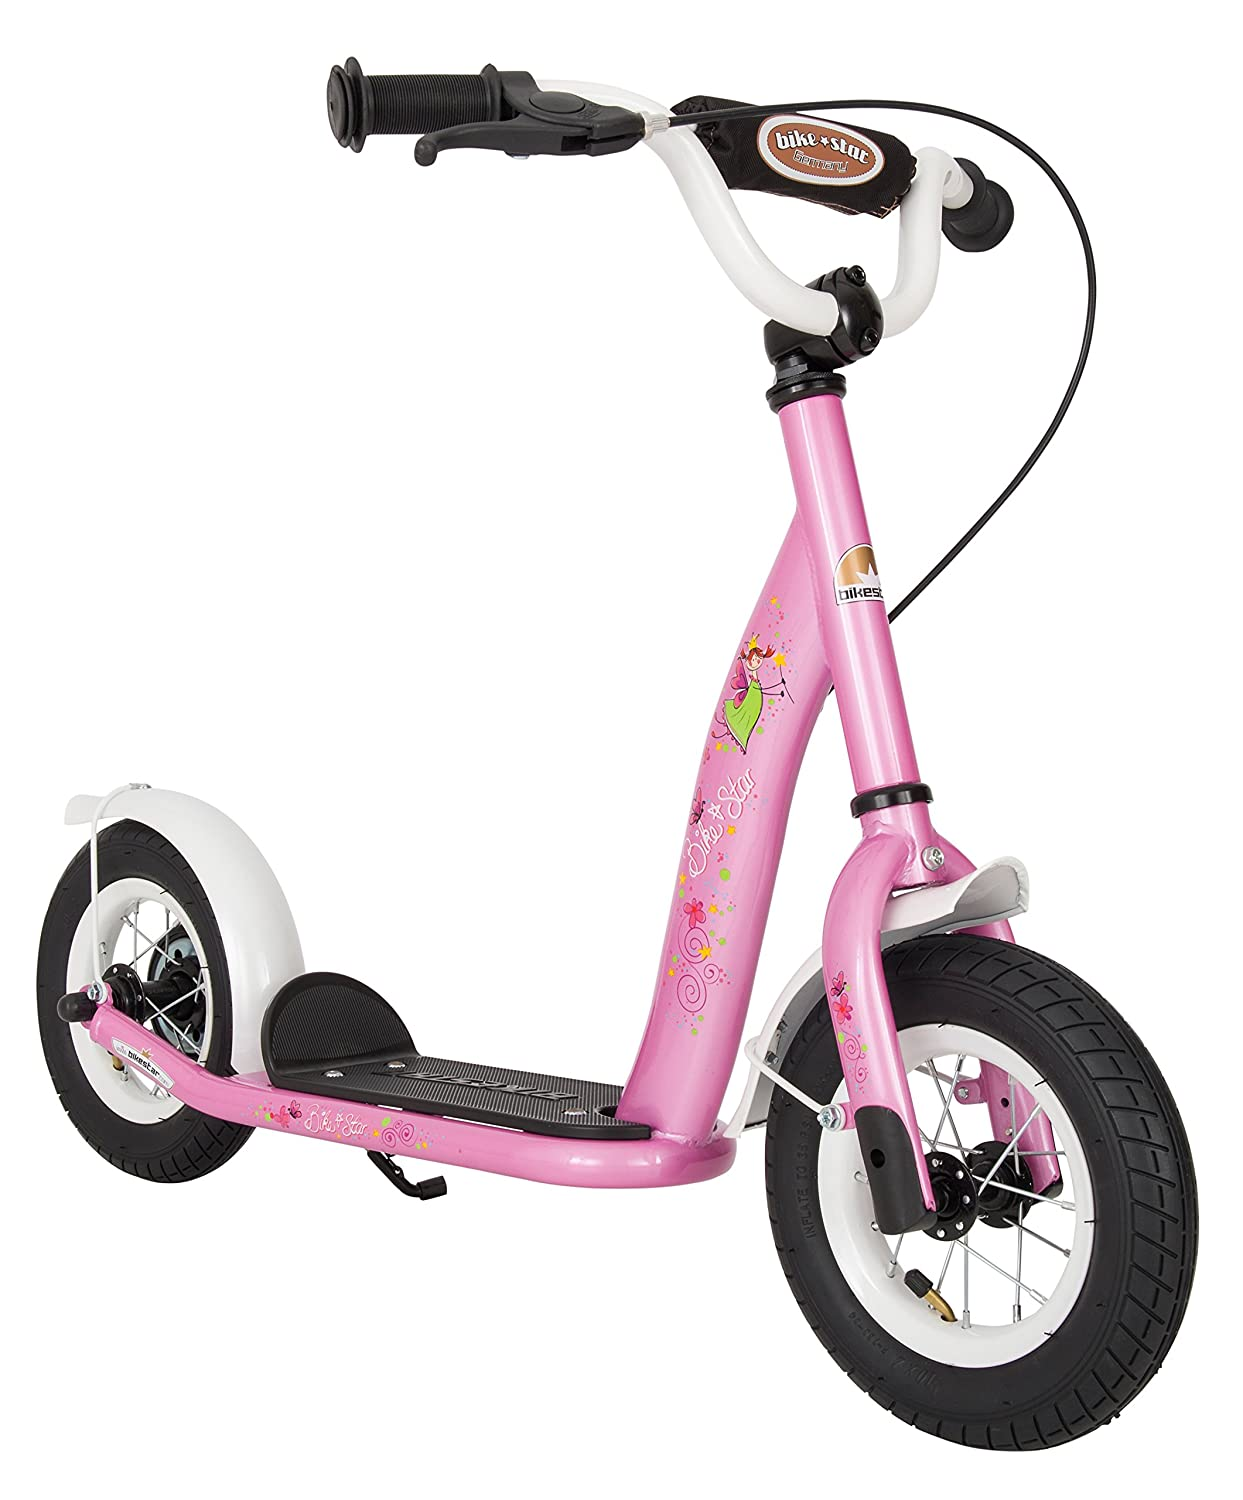 BIKESTAR� Original Safety Pro Sport Push Kick Scooter Kids with brakes, mudguard and air tires for age 5 year old children